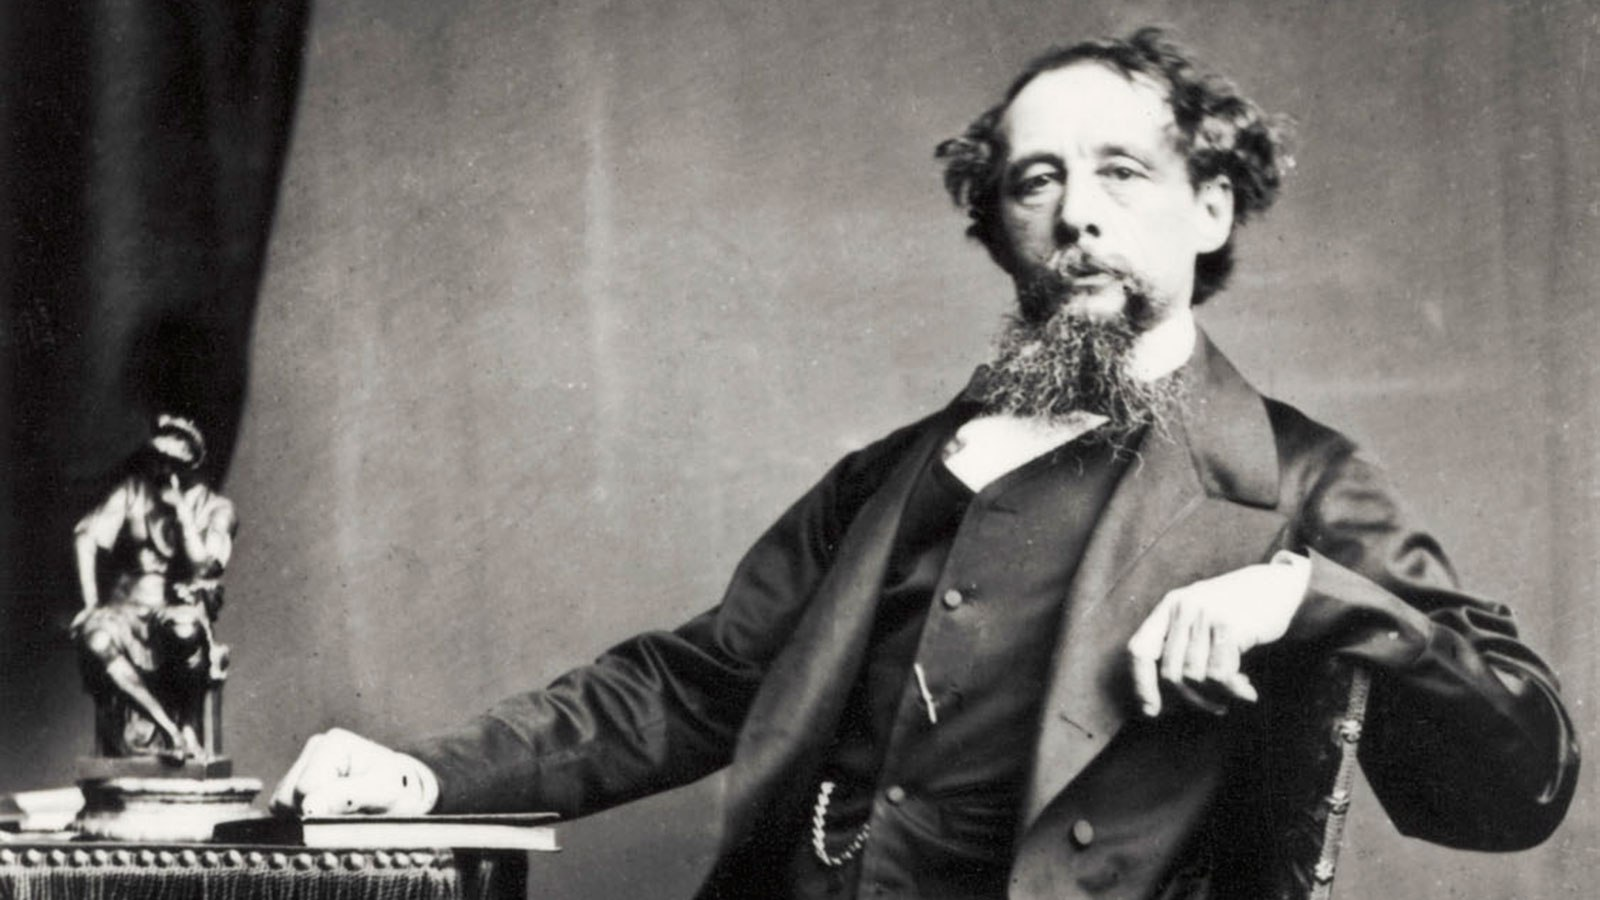 Charles Dickens - Portrait of the British novelist.